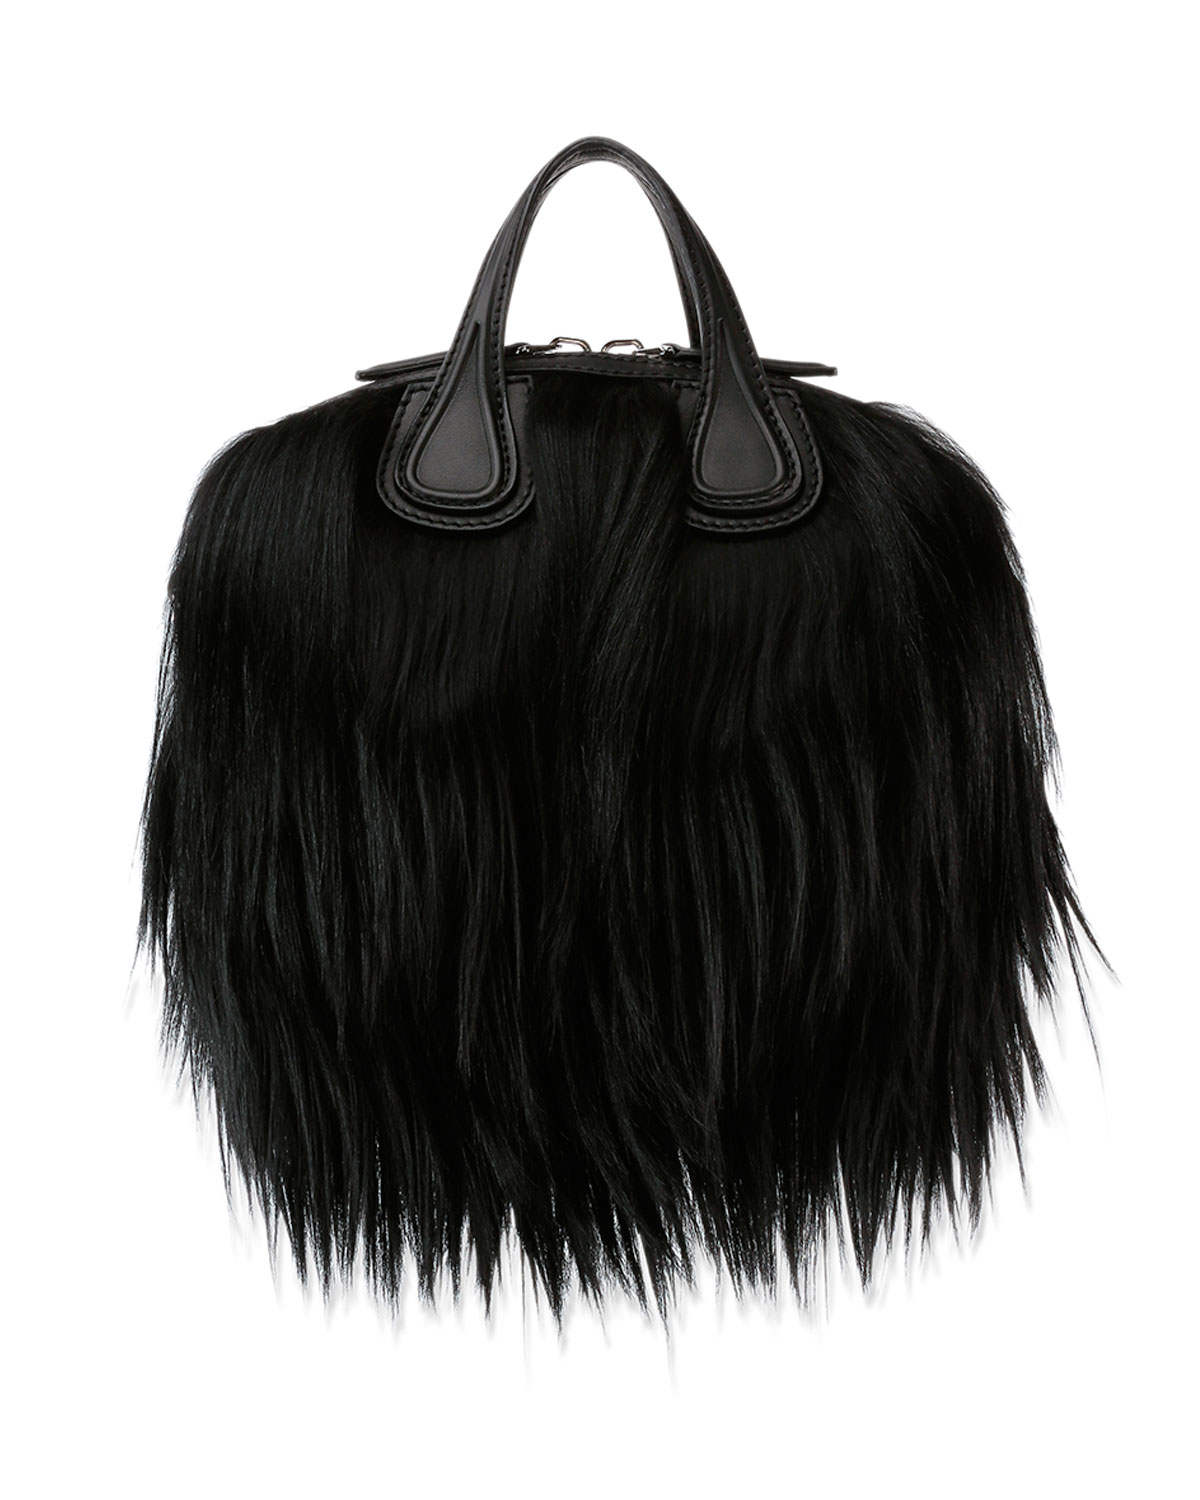 Nightingale Micro Fur Satchel Bag Black